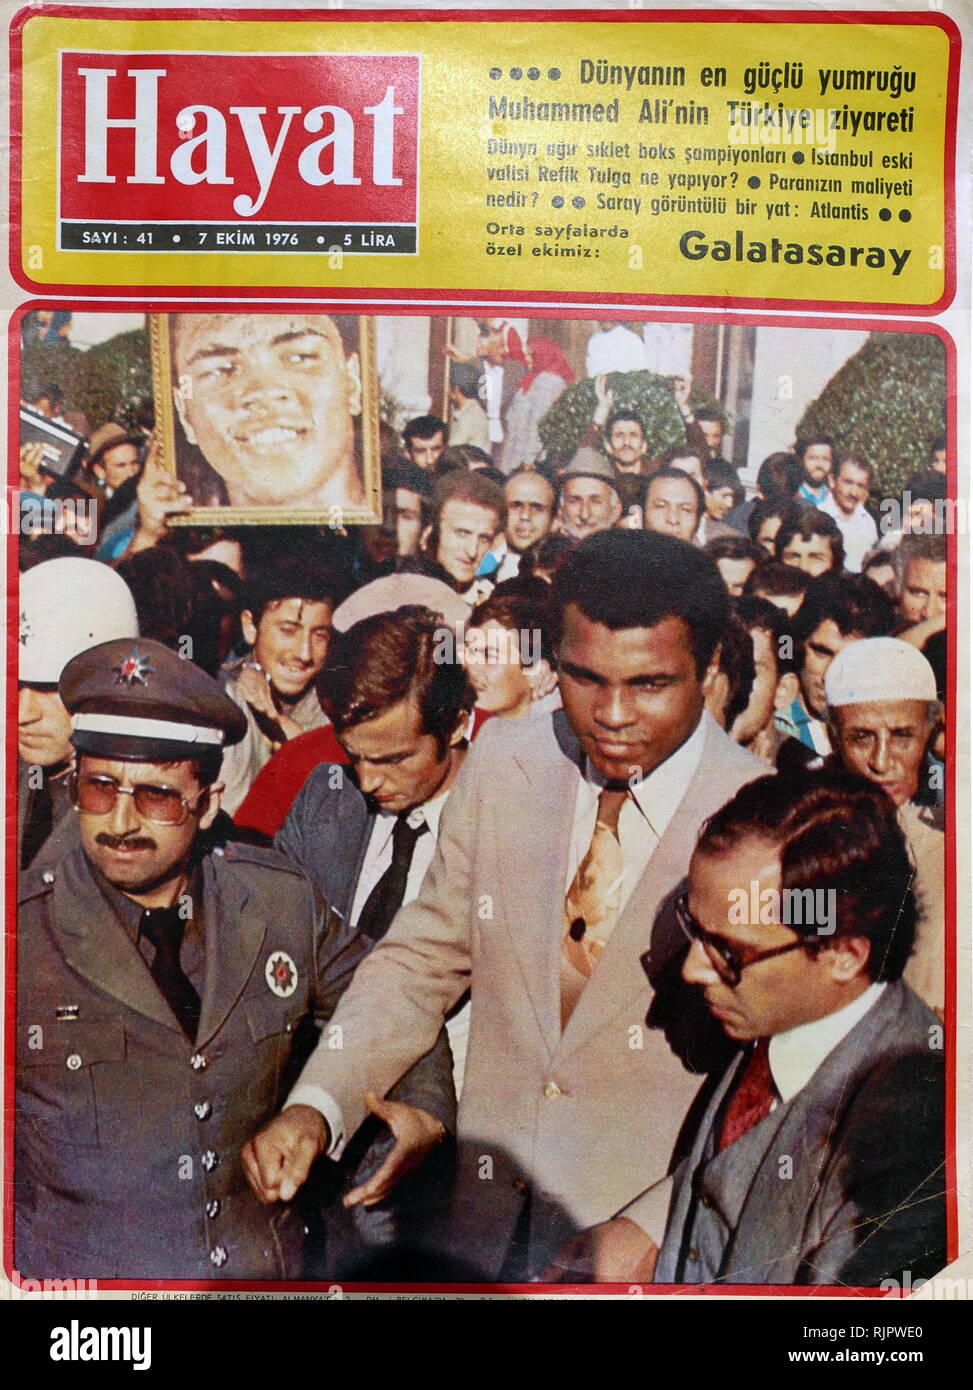 Turkish press coverage of the 1976, visit to Turkey by Muhammad Ali,(1942 - 2016). Ali was an American professional boxer and activist; He is widely regarded as one of the most significant and celebrated sports figures of the 20th century. - Stock Image